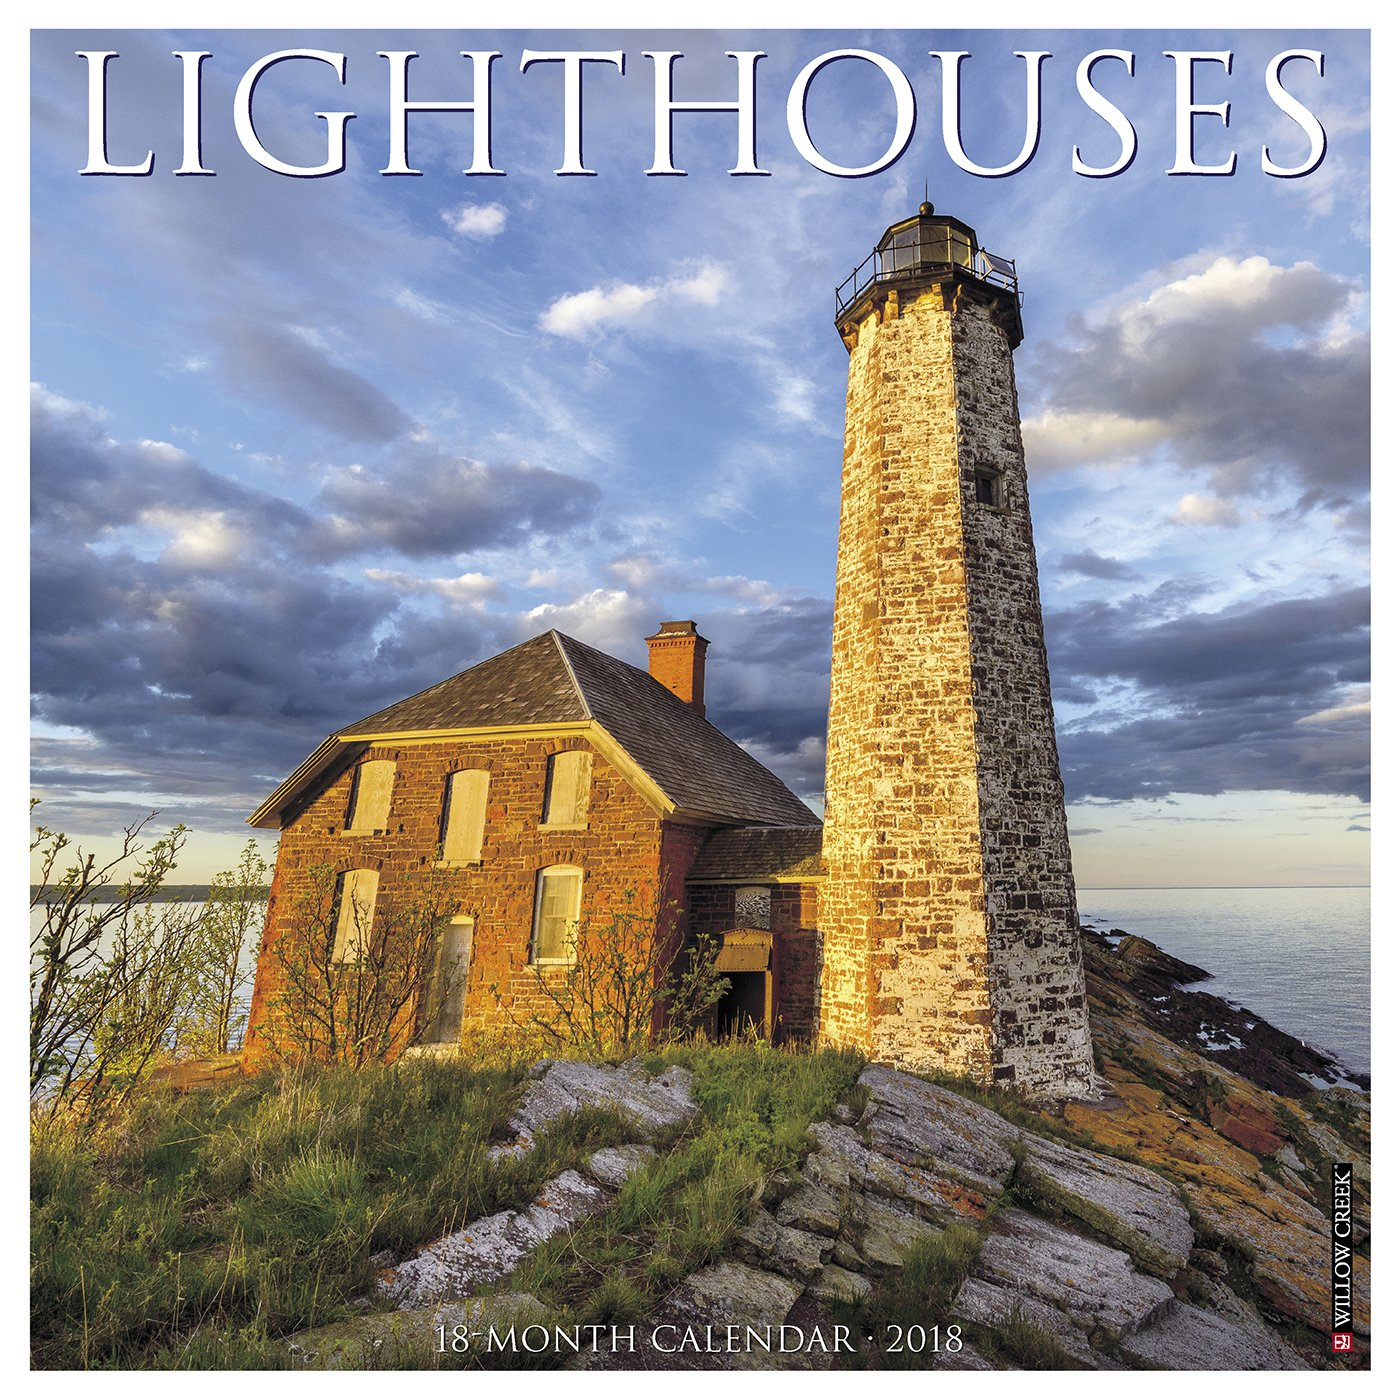 Lighthouses 2018 Calendar Calendar – Wall Calendar, June 21, 2017 Willow Creek Press 1682345459 NON-CLASSIFIABLE Travel/General